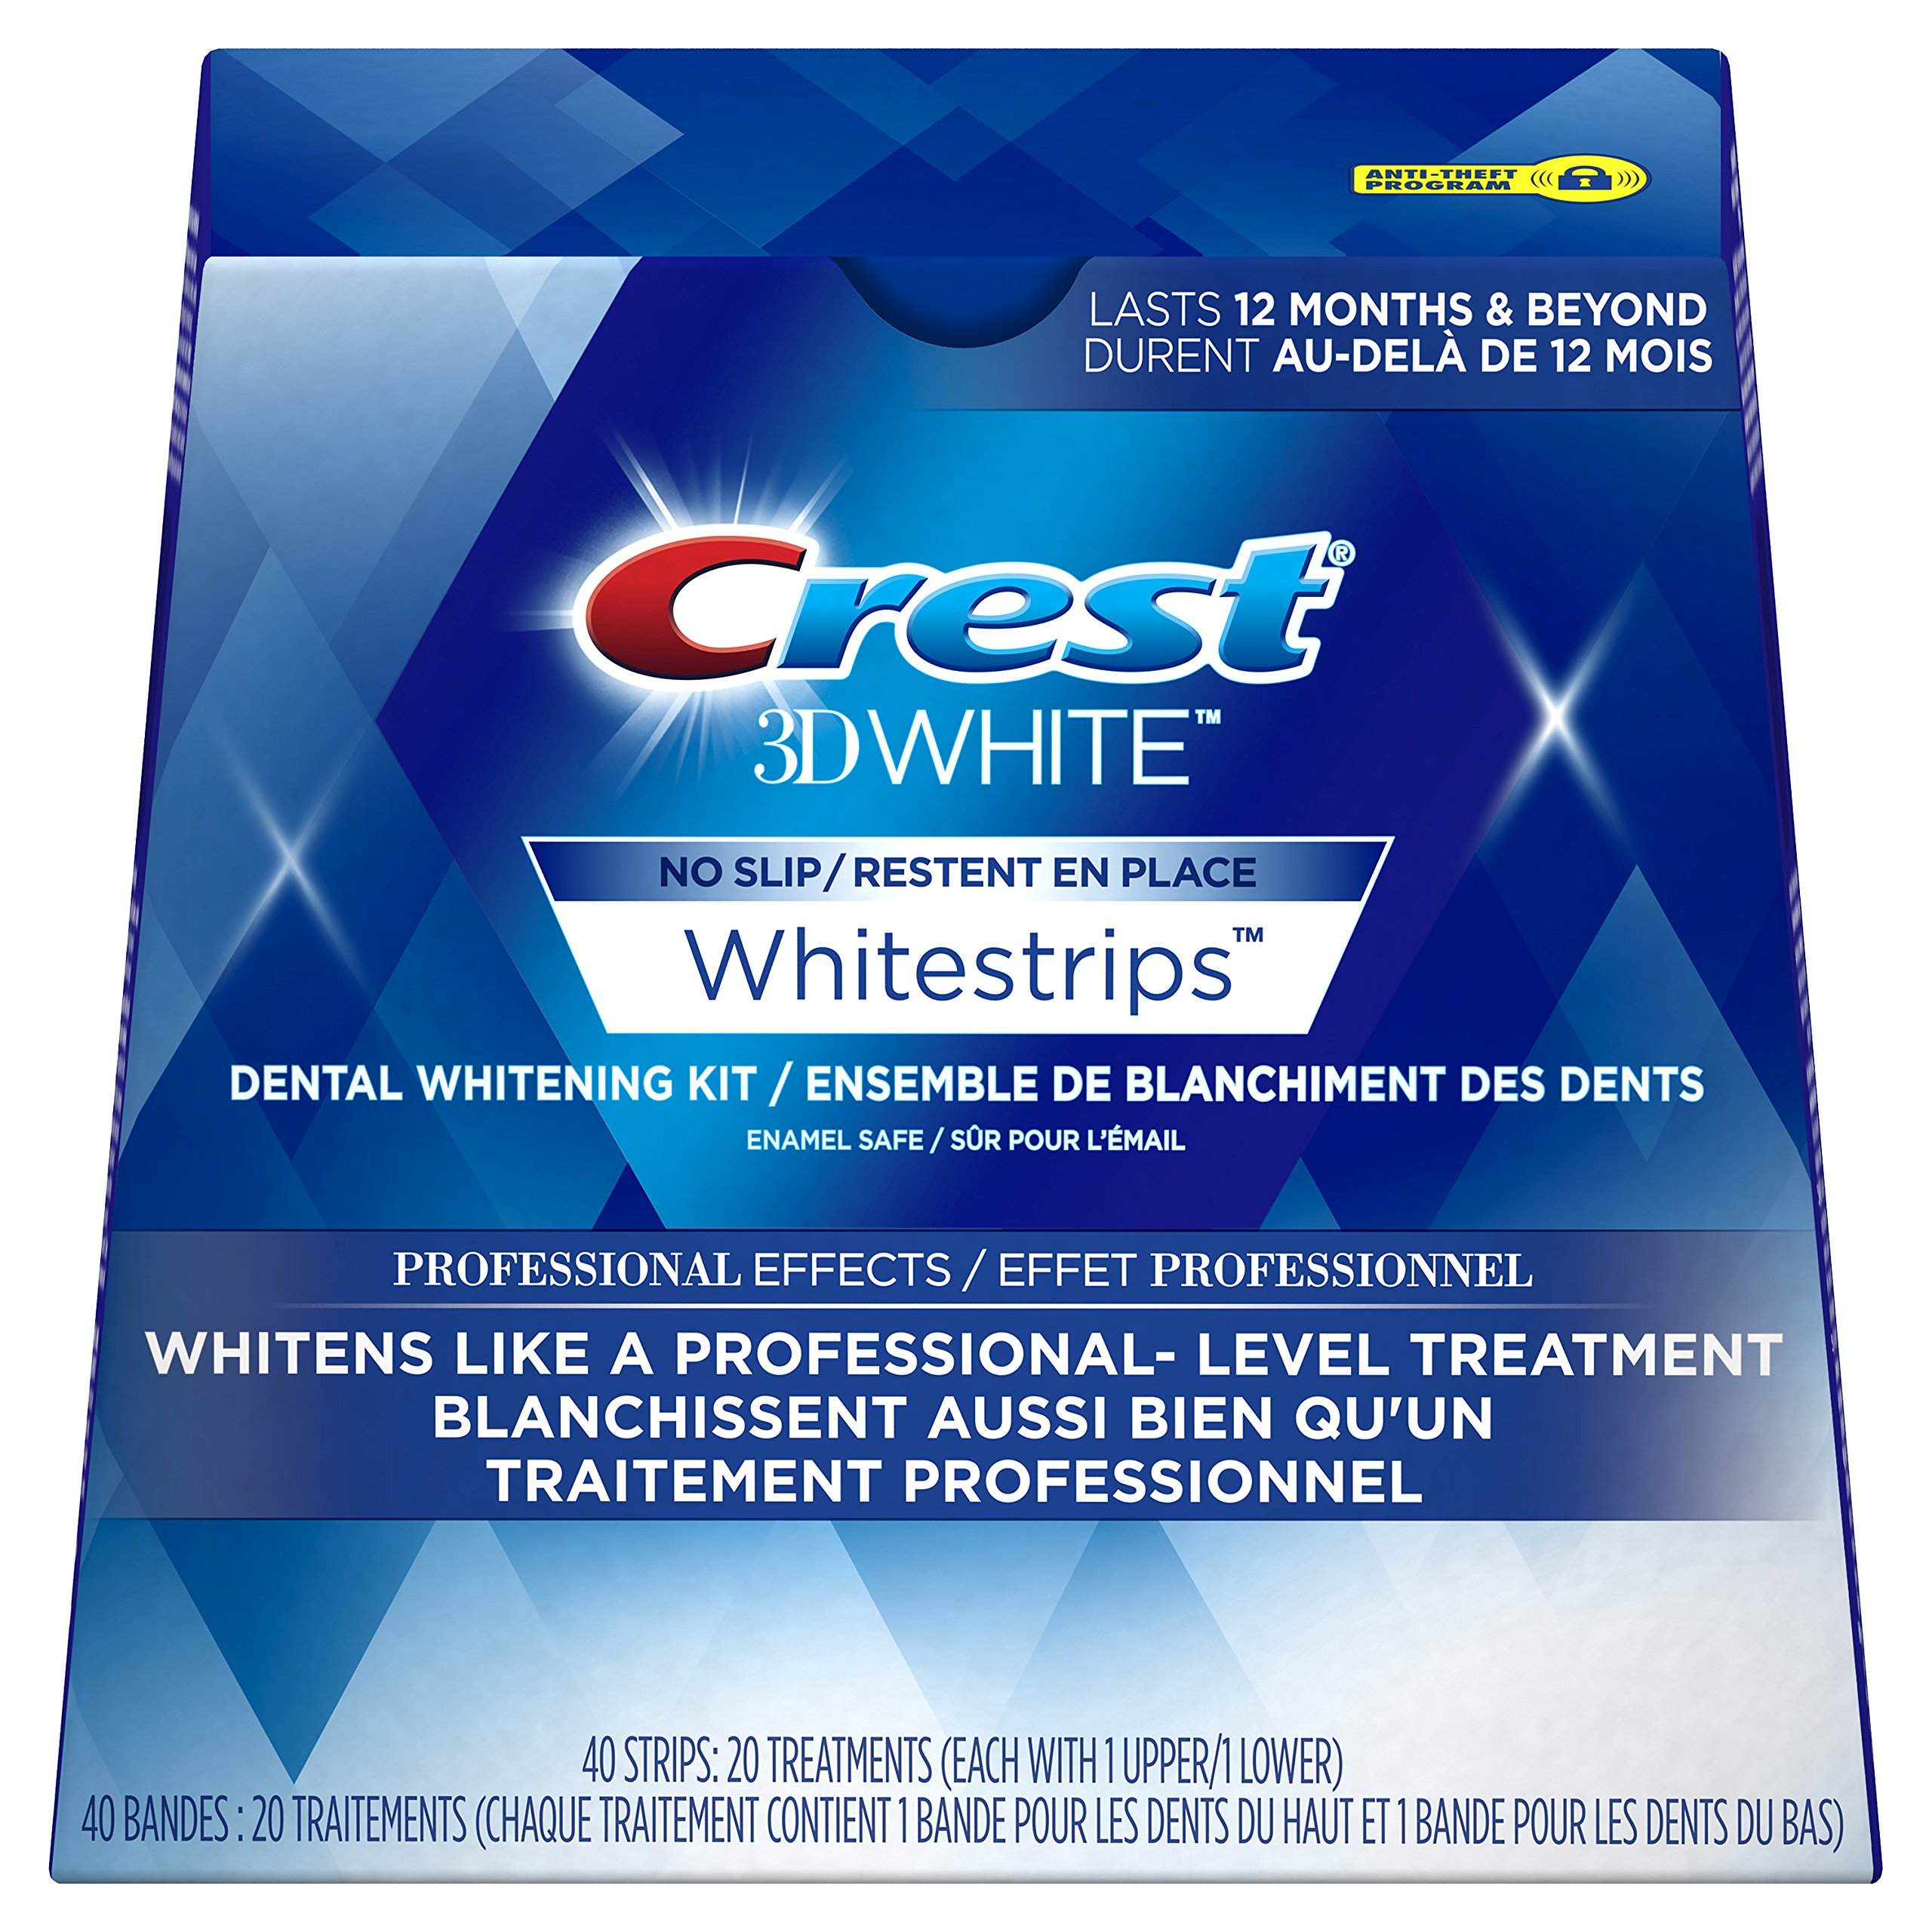 Crest 3d White Whitestrips Professional Effects Treatments, 20 Count by Crest (Image #1)